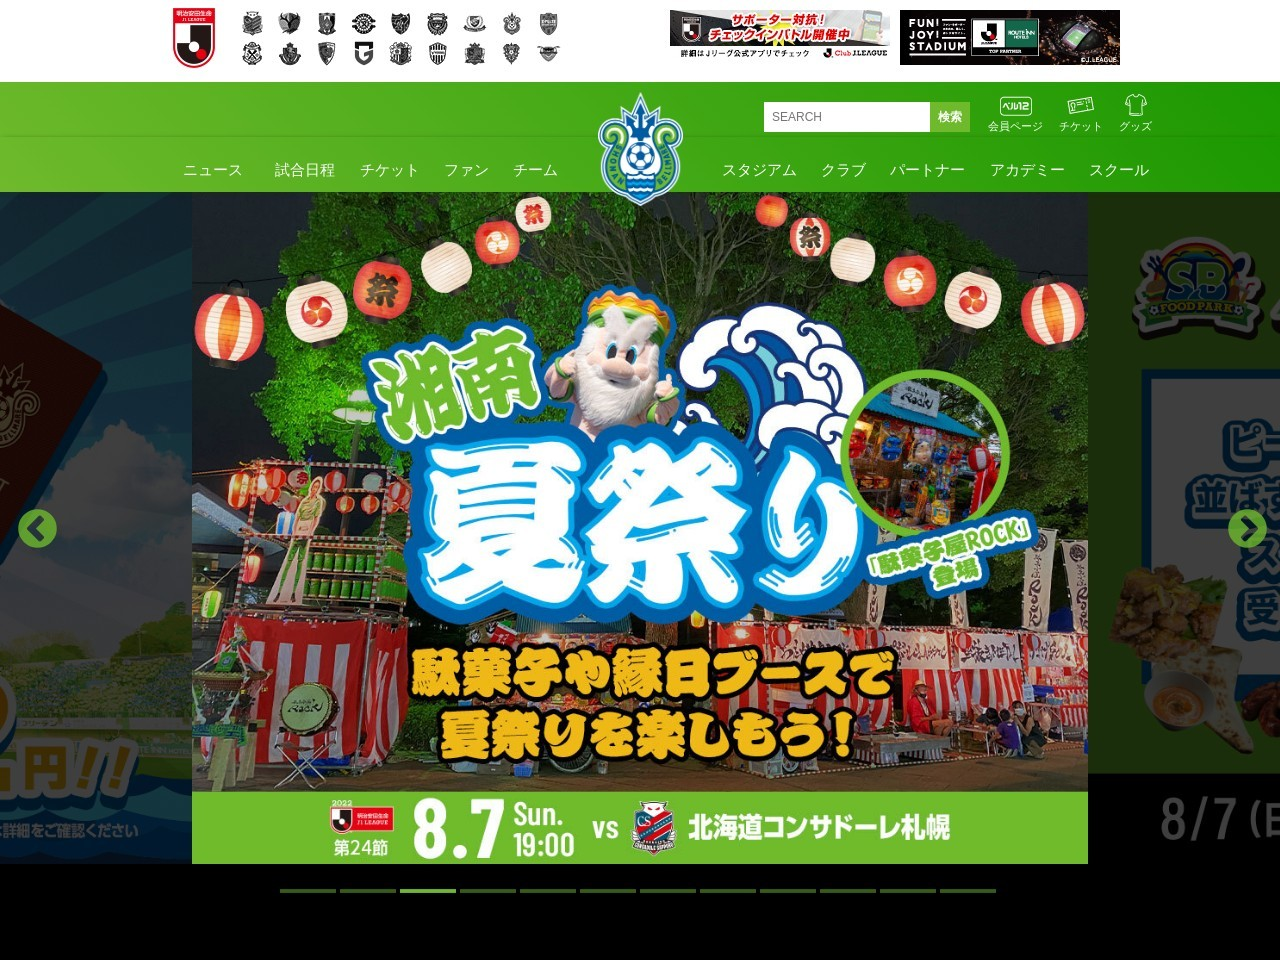 http://www.bellmare.co.jp/184675